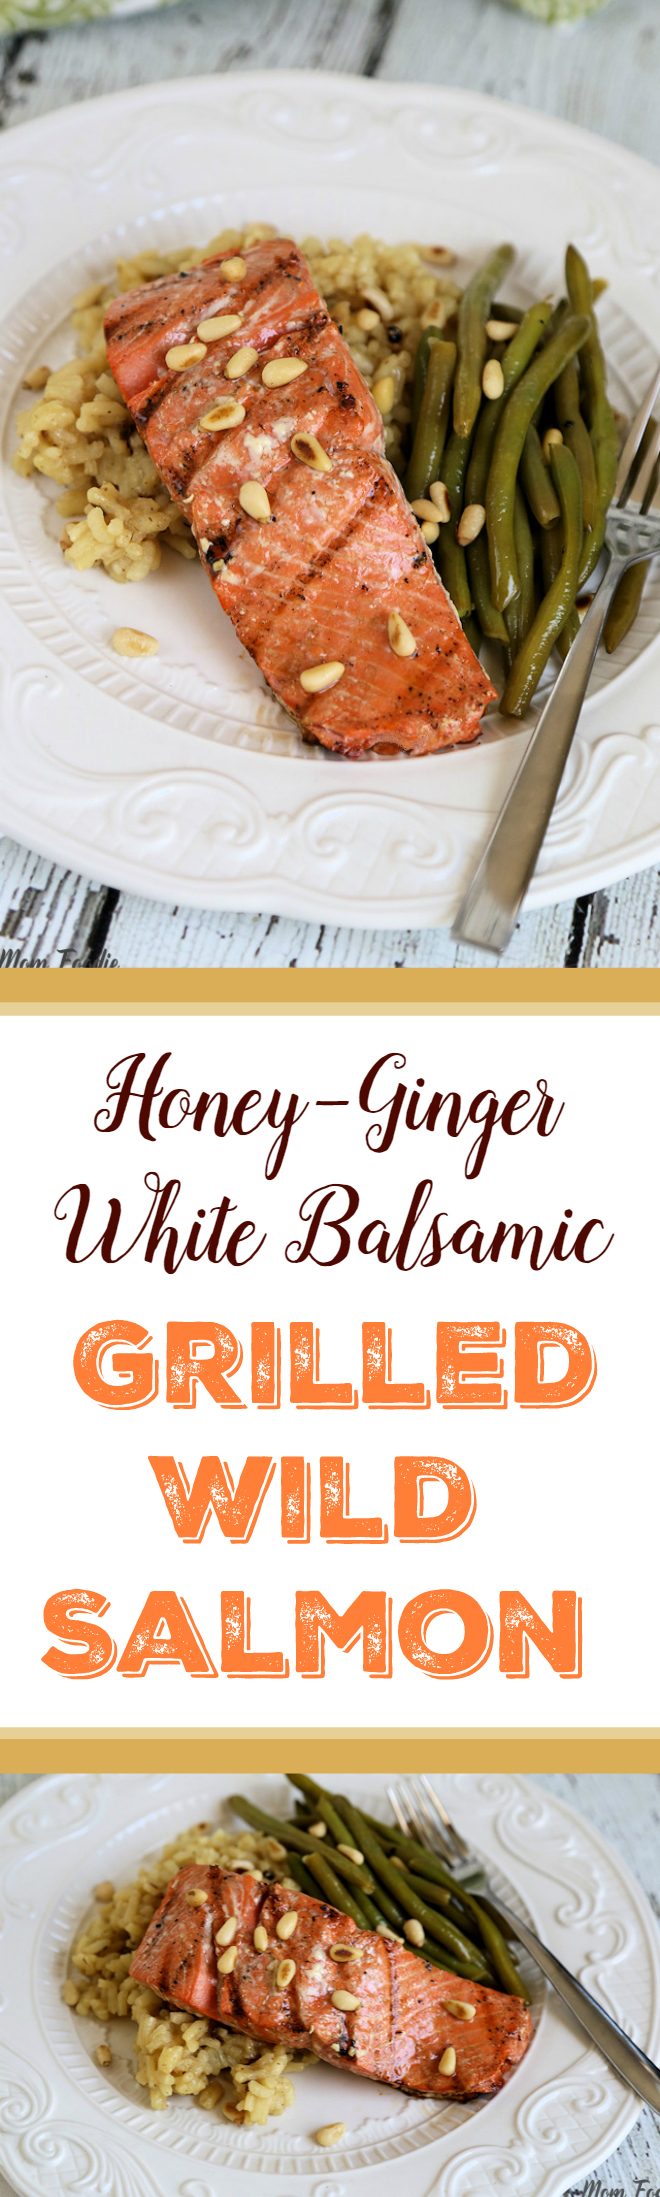 Honey Ginger White Balsamic Grilled Wild Salmon